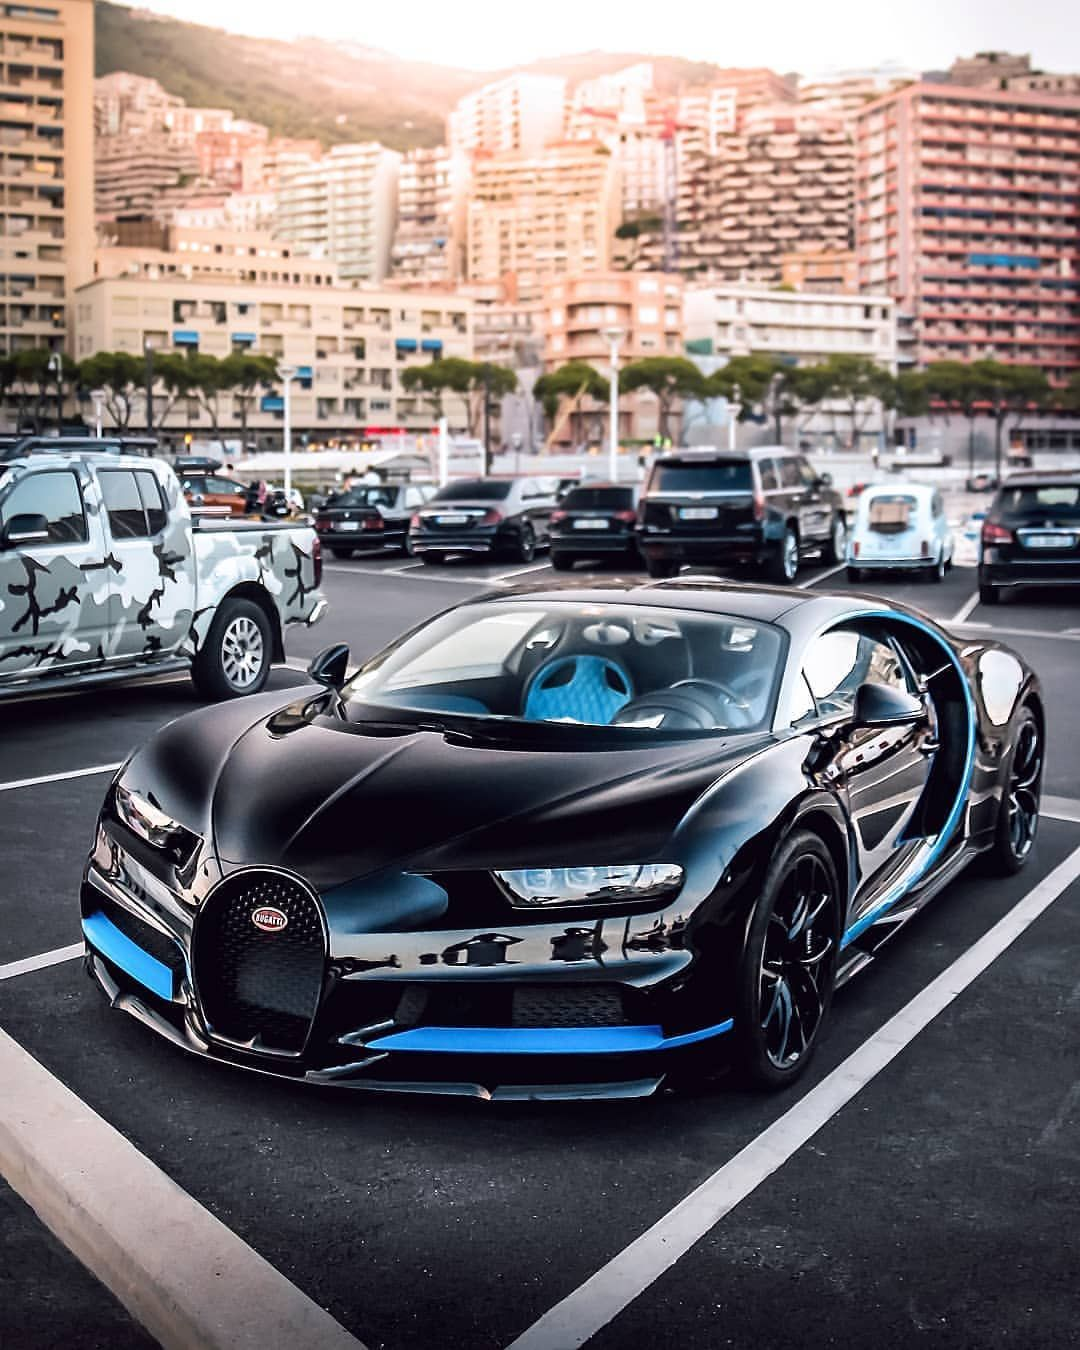 Bugatti Chiron In Monaco 📸 By: @balco (With Images